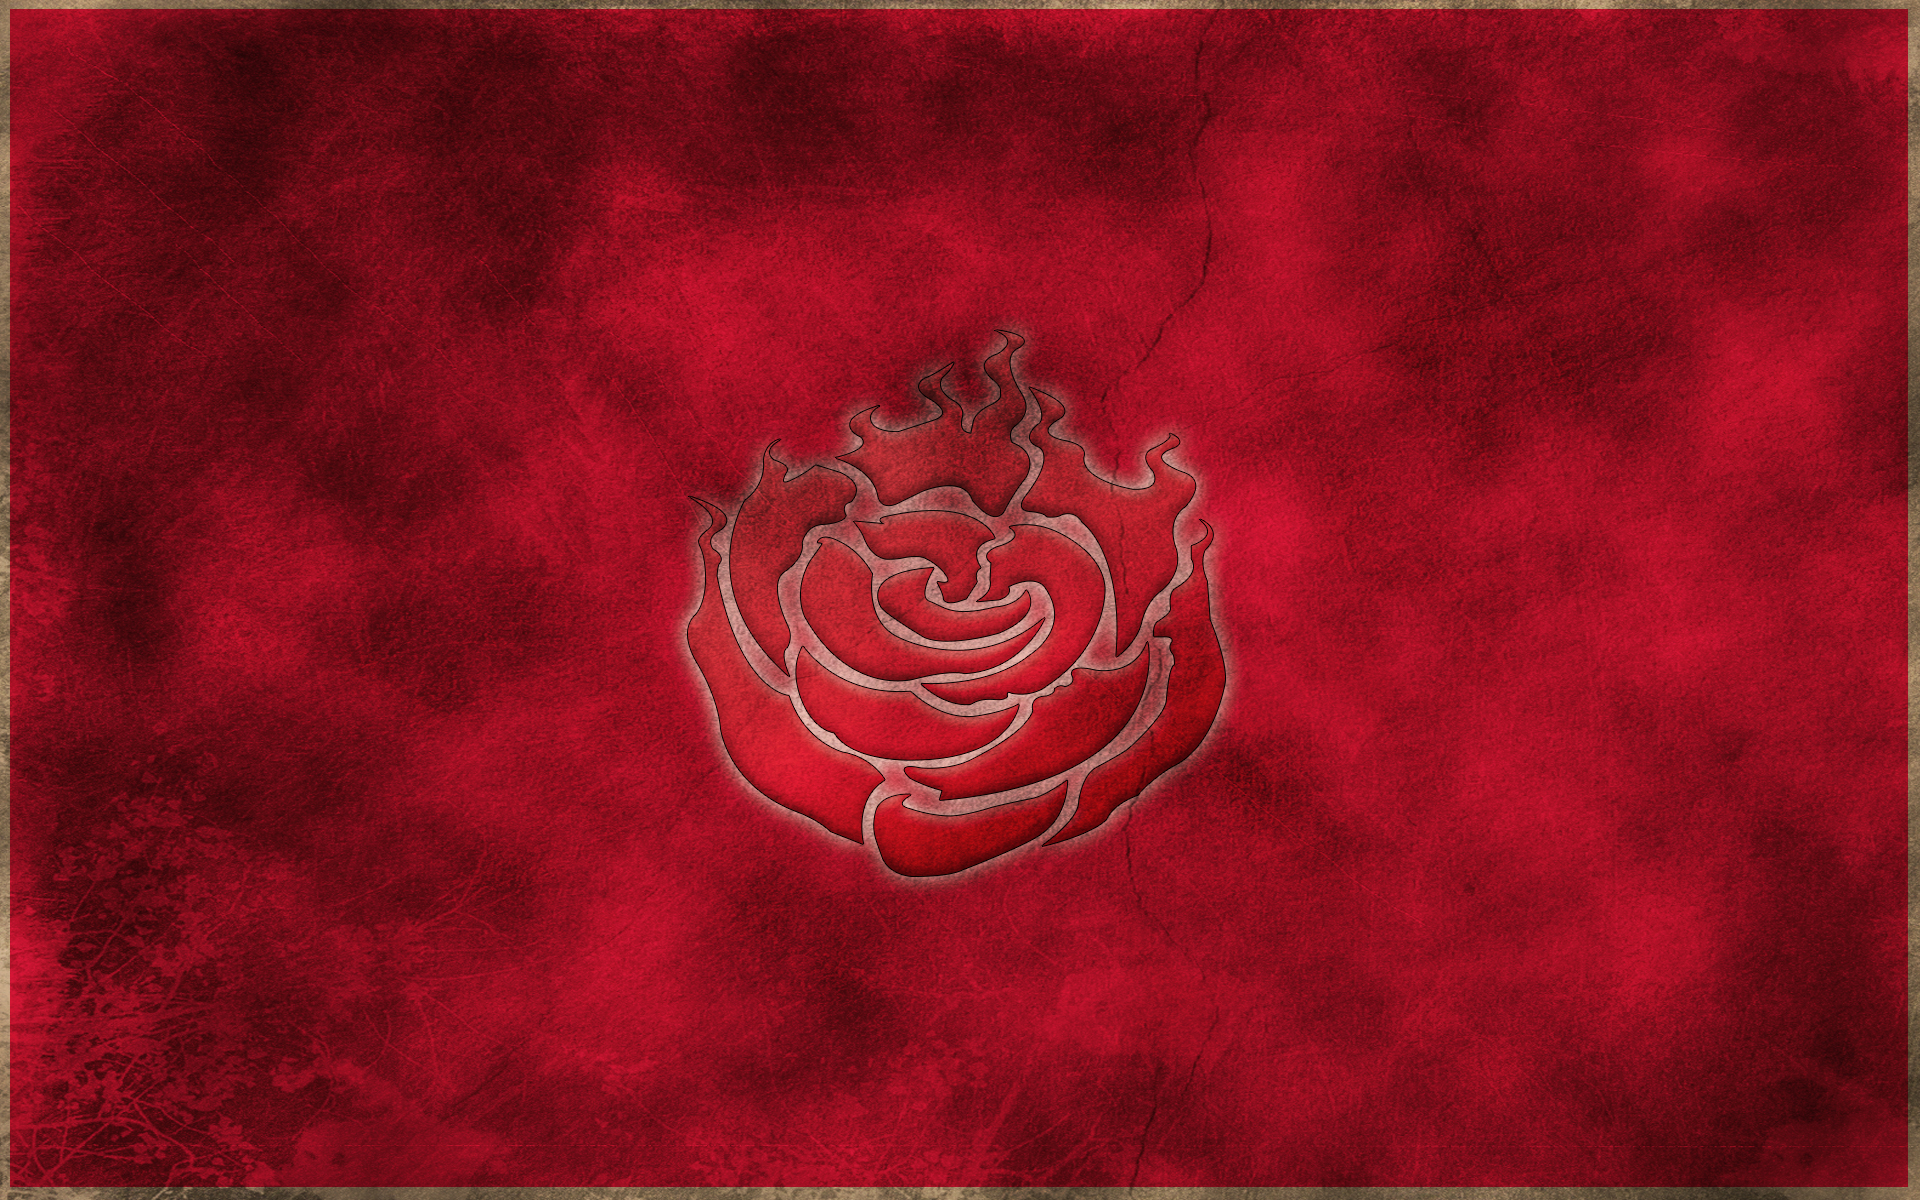 Rwby Ruby Rose Symbol Wallpaper By Crypticspider D7fz6qp